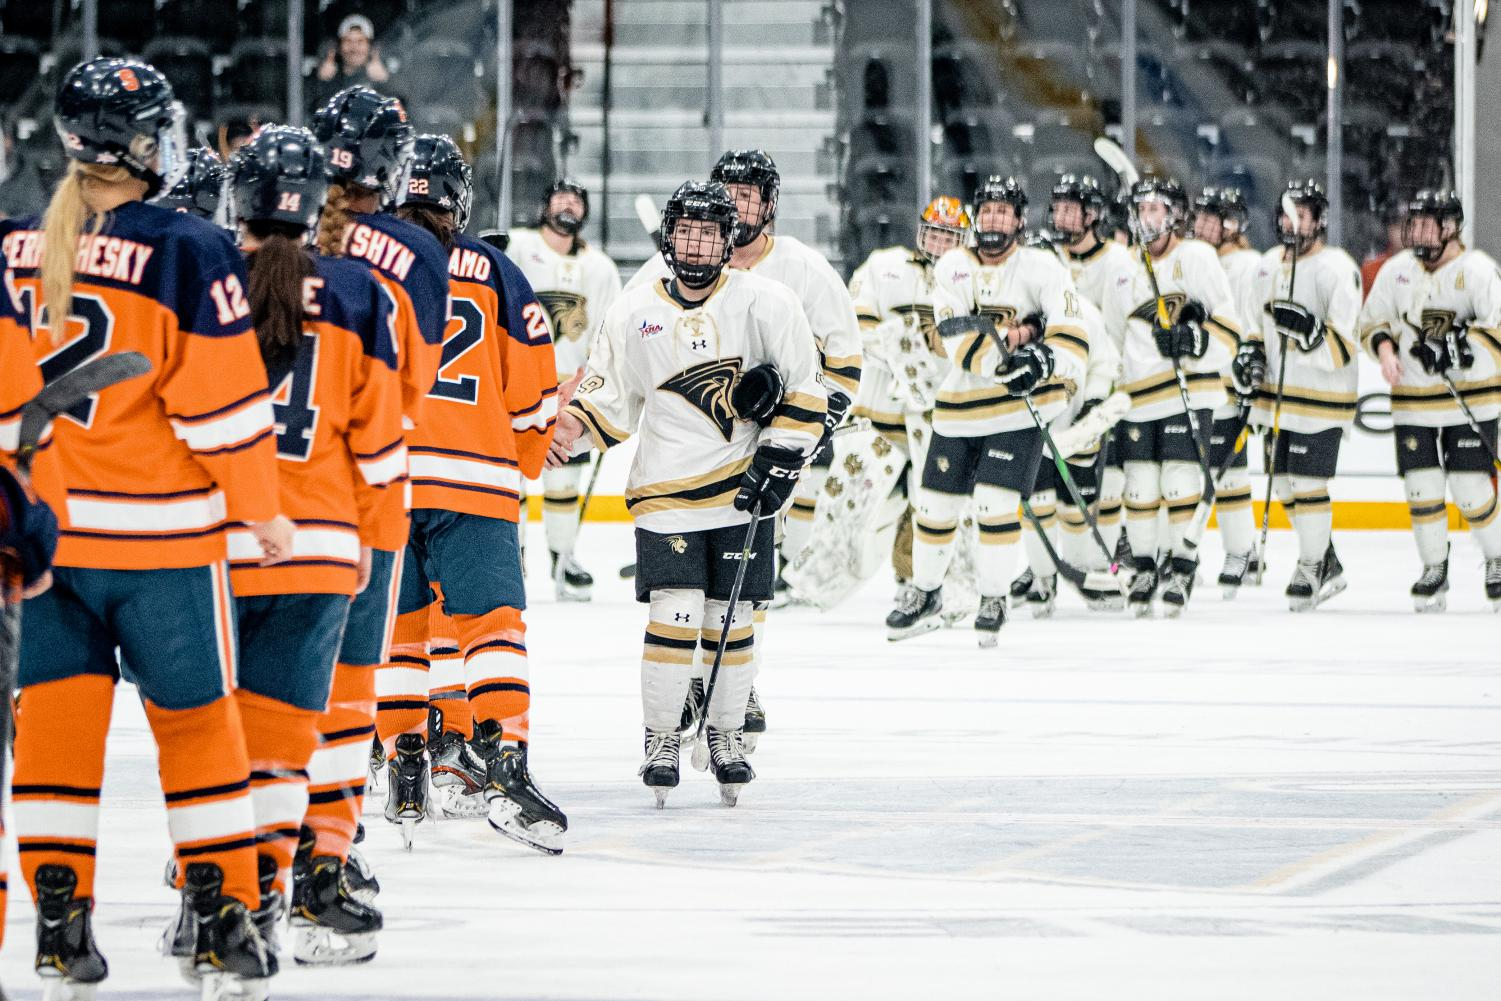 The Lions played Syracuse on Dec. 9 at Centene Community Ice Center. The Lions lost 1-13.